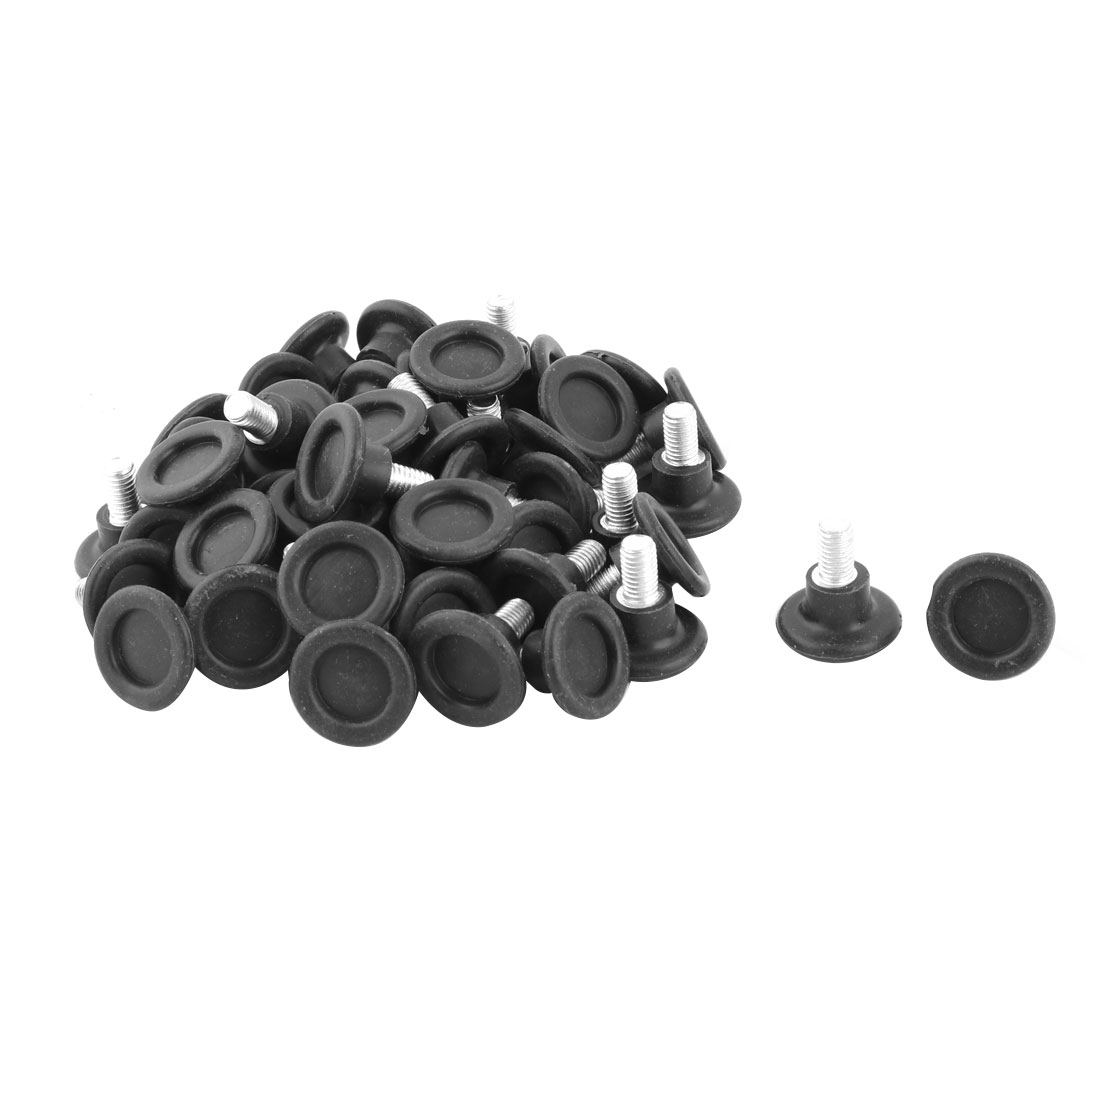 Dorm Metal Round Adjustable Non-slip Chair Wardrobe Leg Fitting Leveling Foot 50pcs